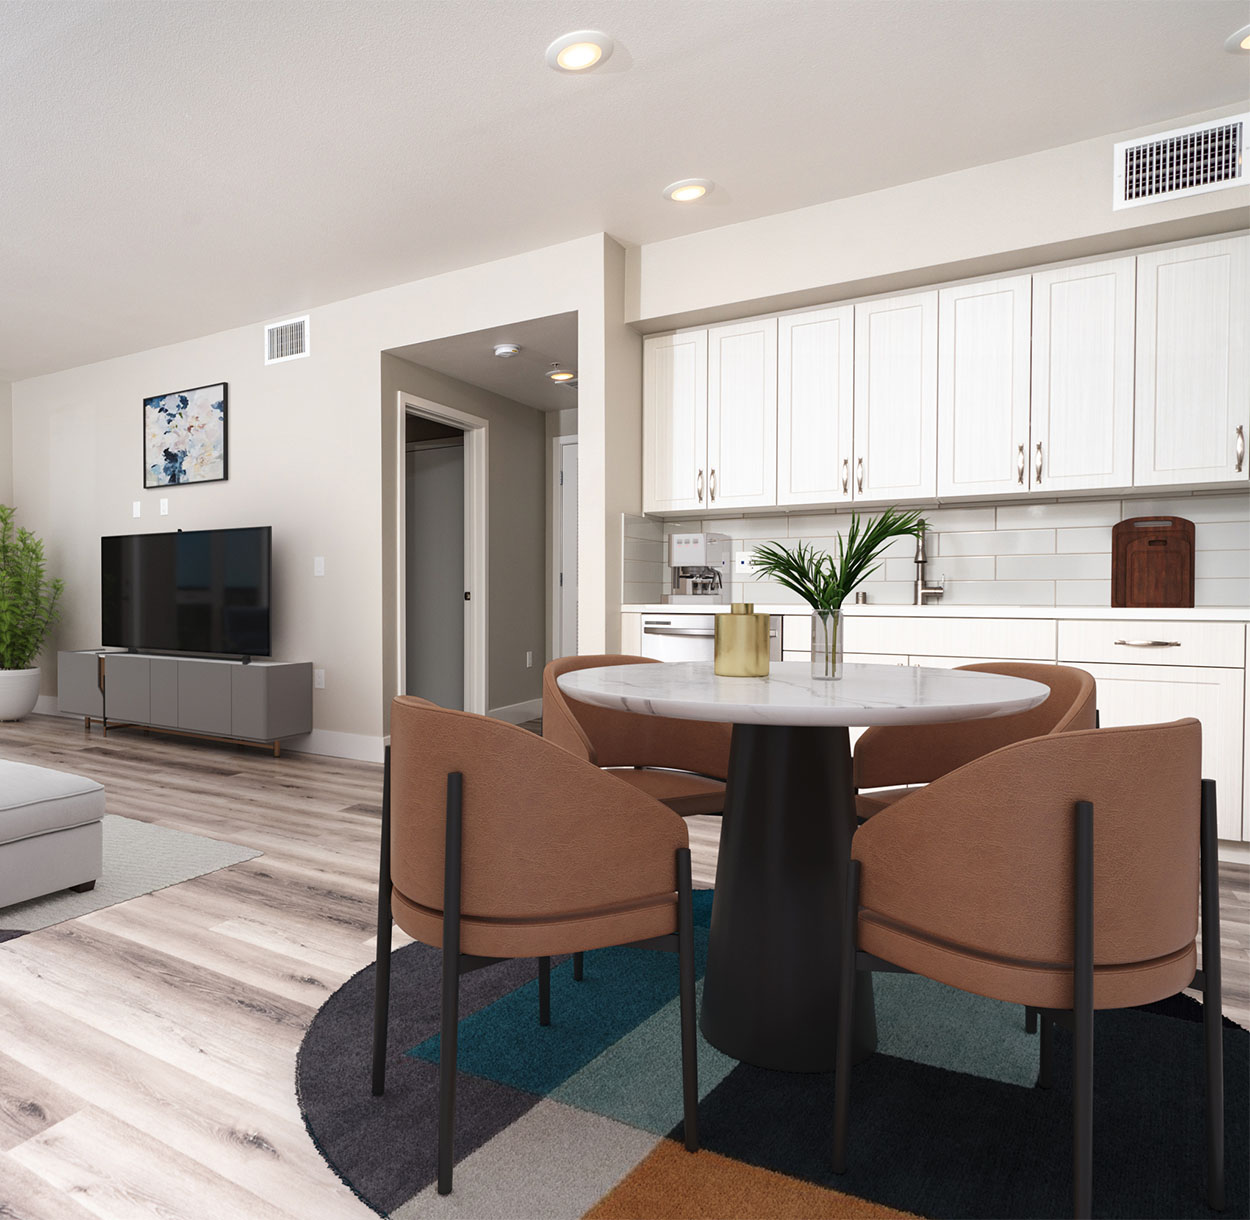 1250 Lakeside apartment living area with wood floor, white cabinets, geometric rug, and modern dining table.